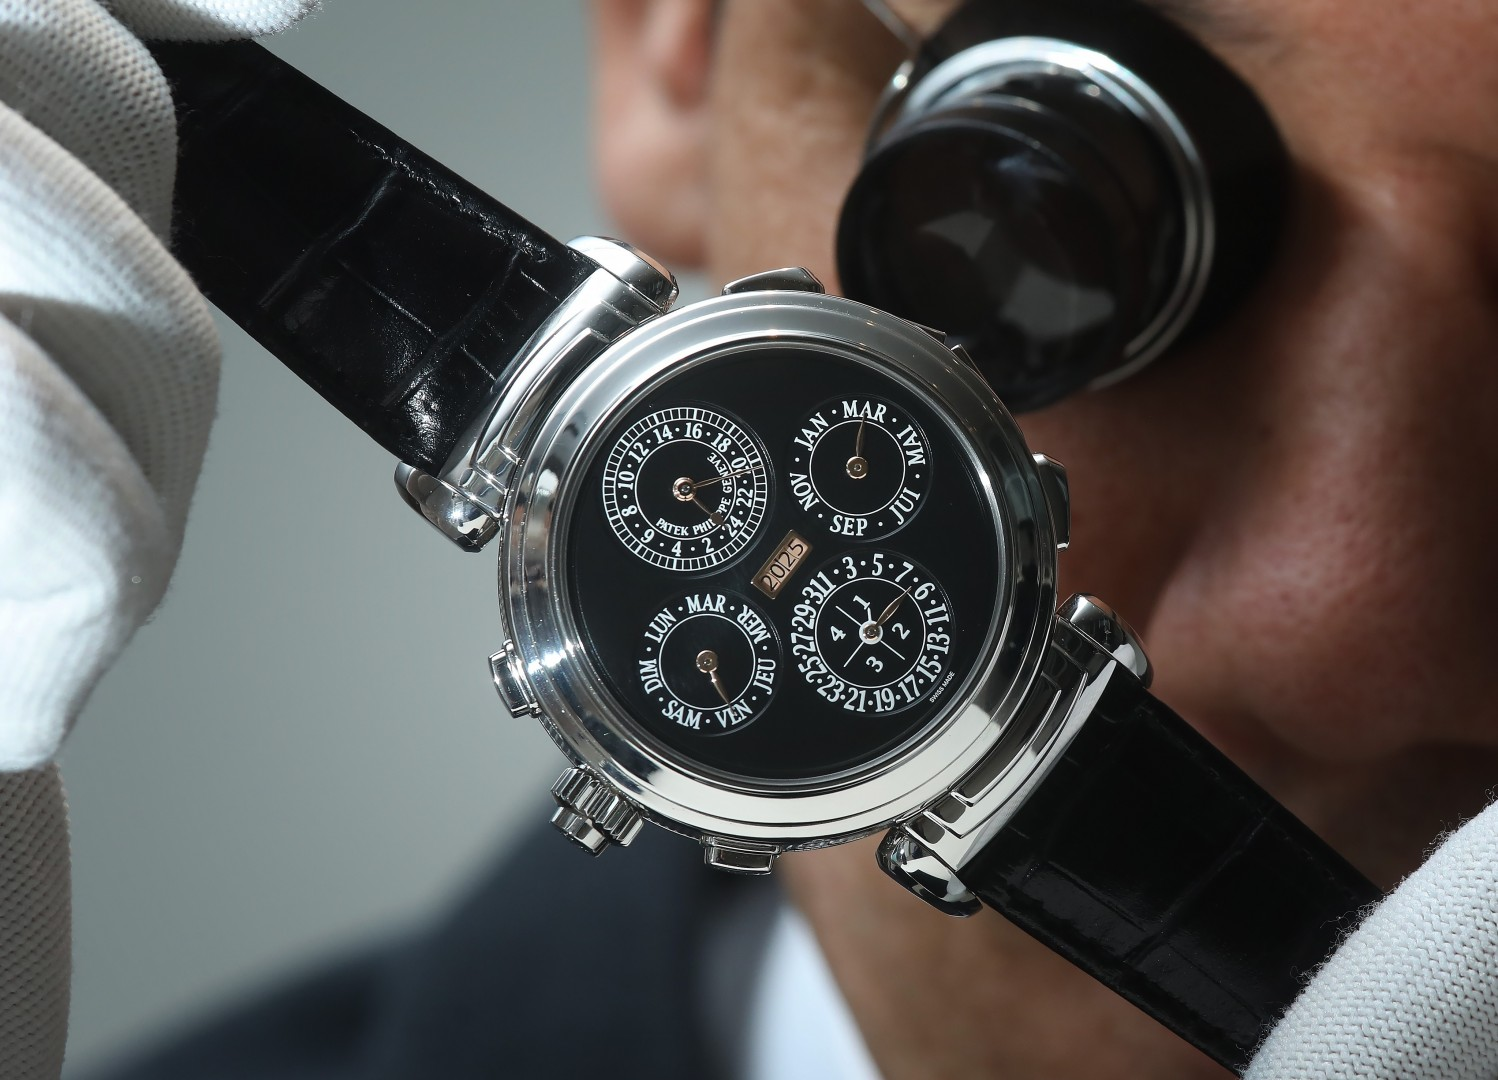 pat2 – Top Luxury Watch Brands With Their Insane Prices 2020